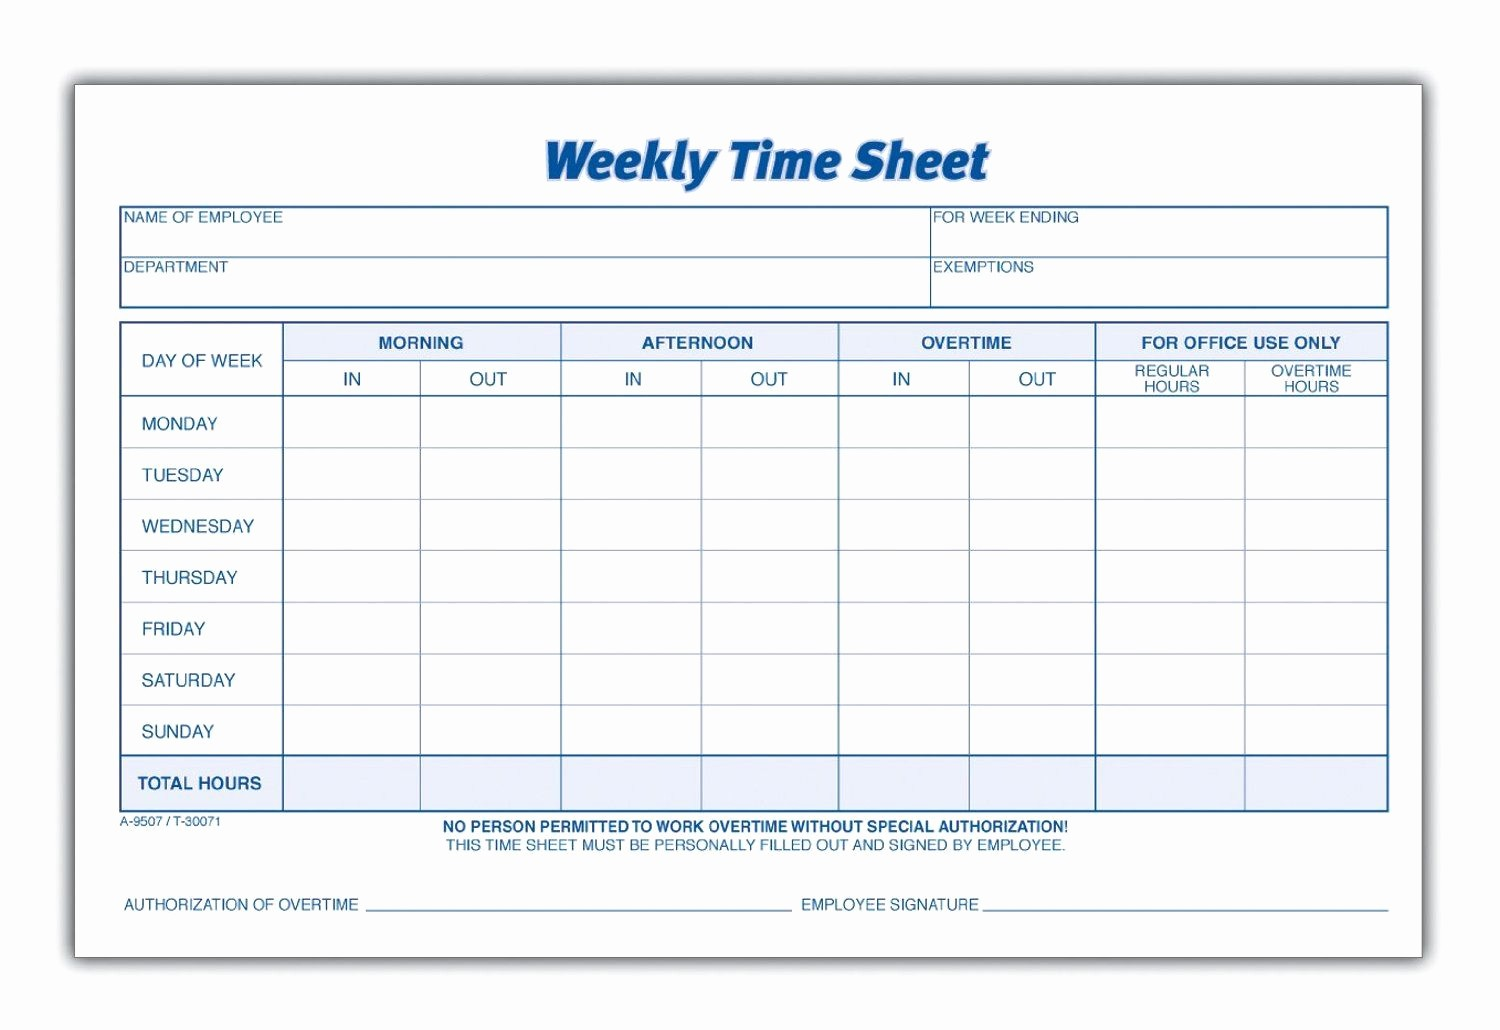 Employee Sign In Sheet Weekly Best Of Weekly Employee Time Sheet Projects to Try